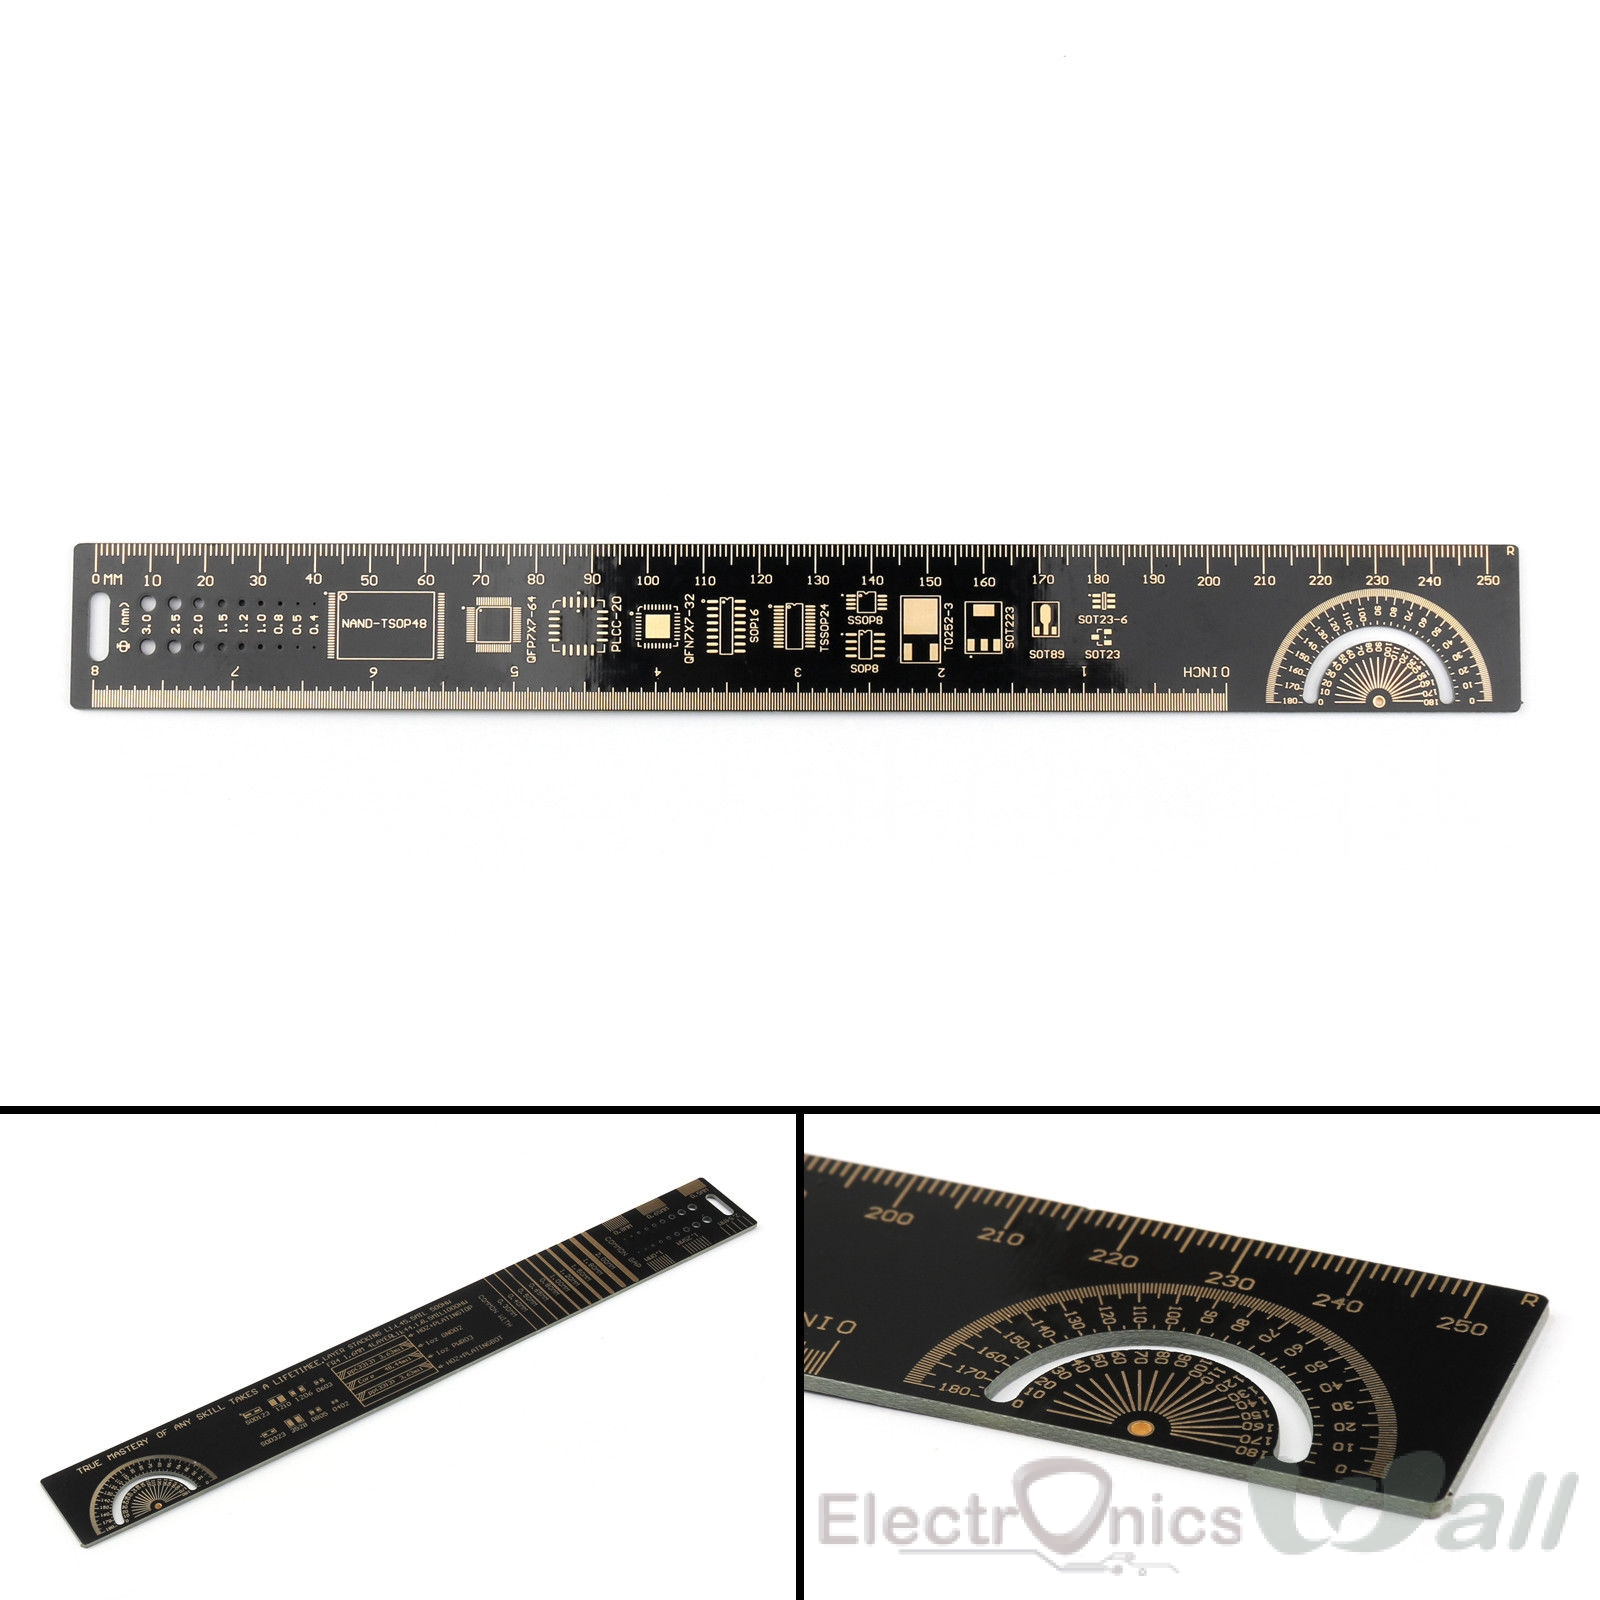 25Cm Multifunctional PCB Ruler For Electronic Engineers Tool Chip IC SMD